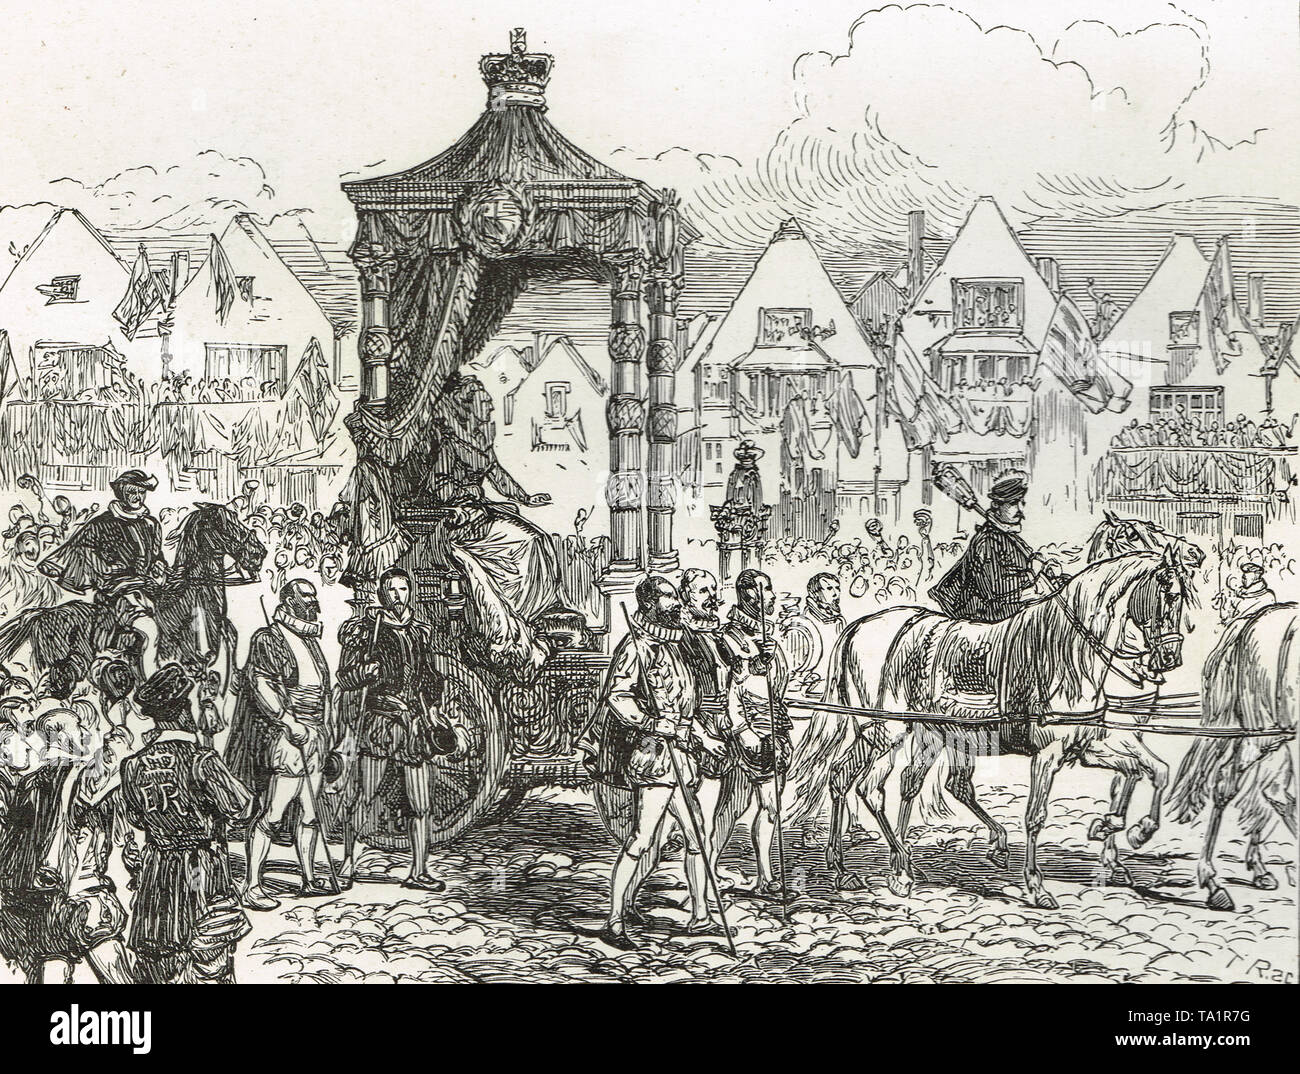 Queen Elizabeth I on her way to st Paul's Cathedral, London. Triumphal procession following defeat of the Spanish Armada in1588 - Stock Image